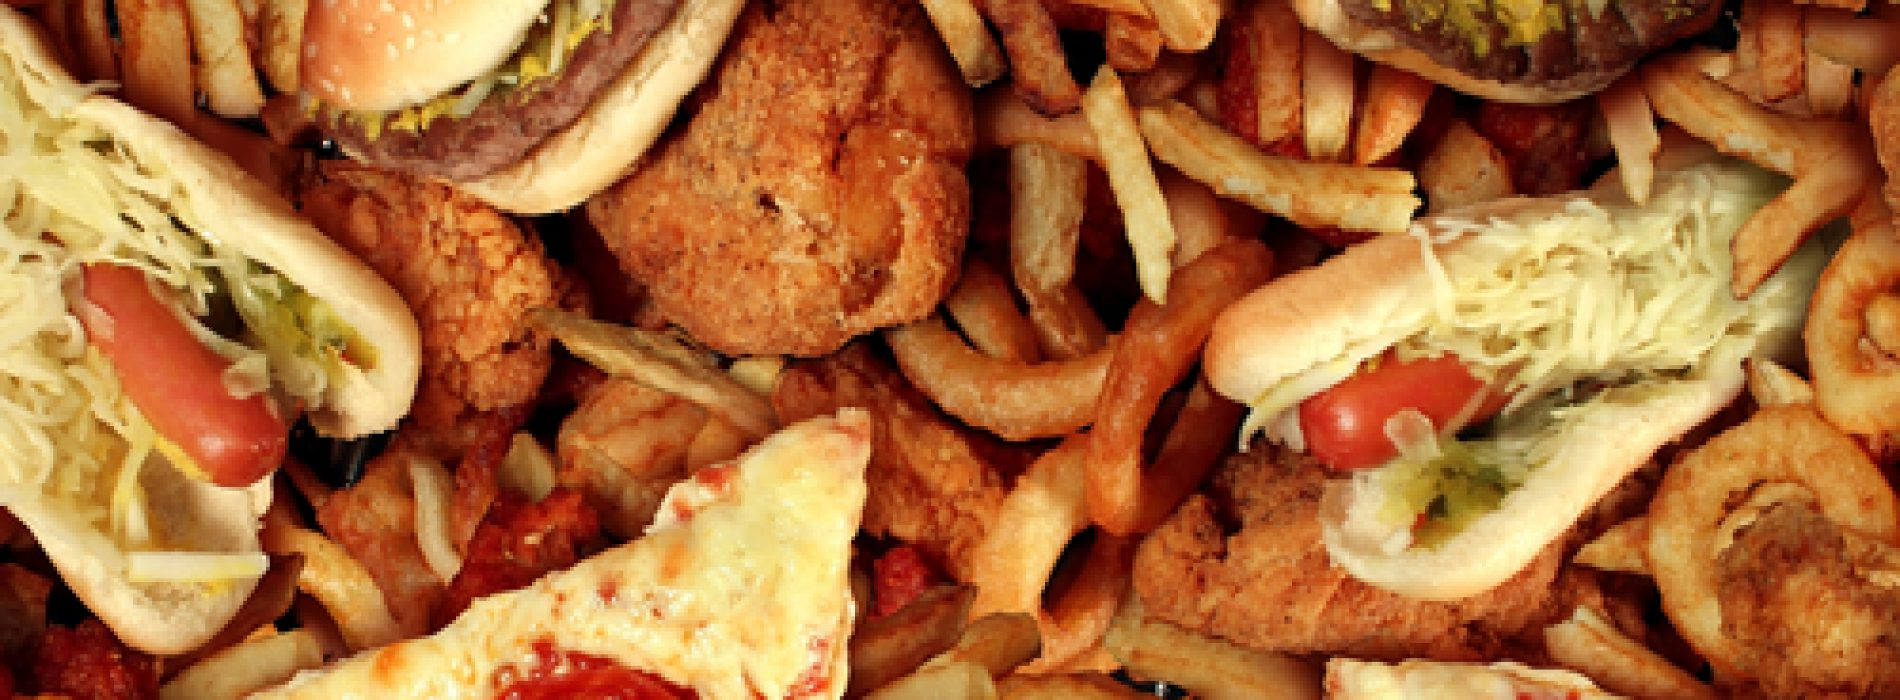 Unhealthy Food Cravings: What are the Causes and How to Stop Them?